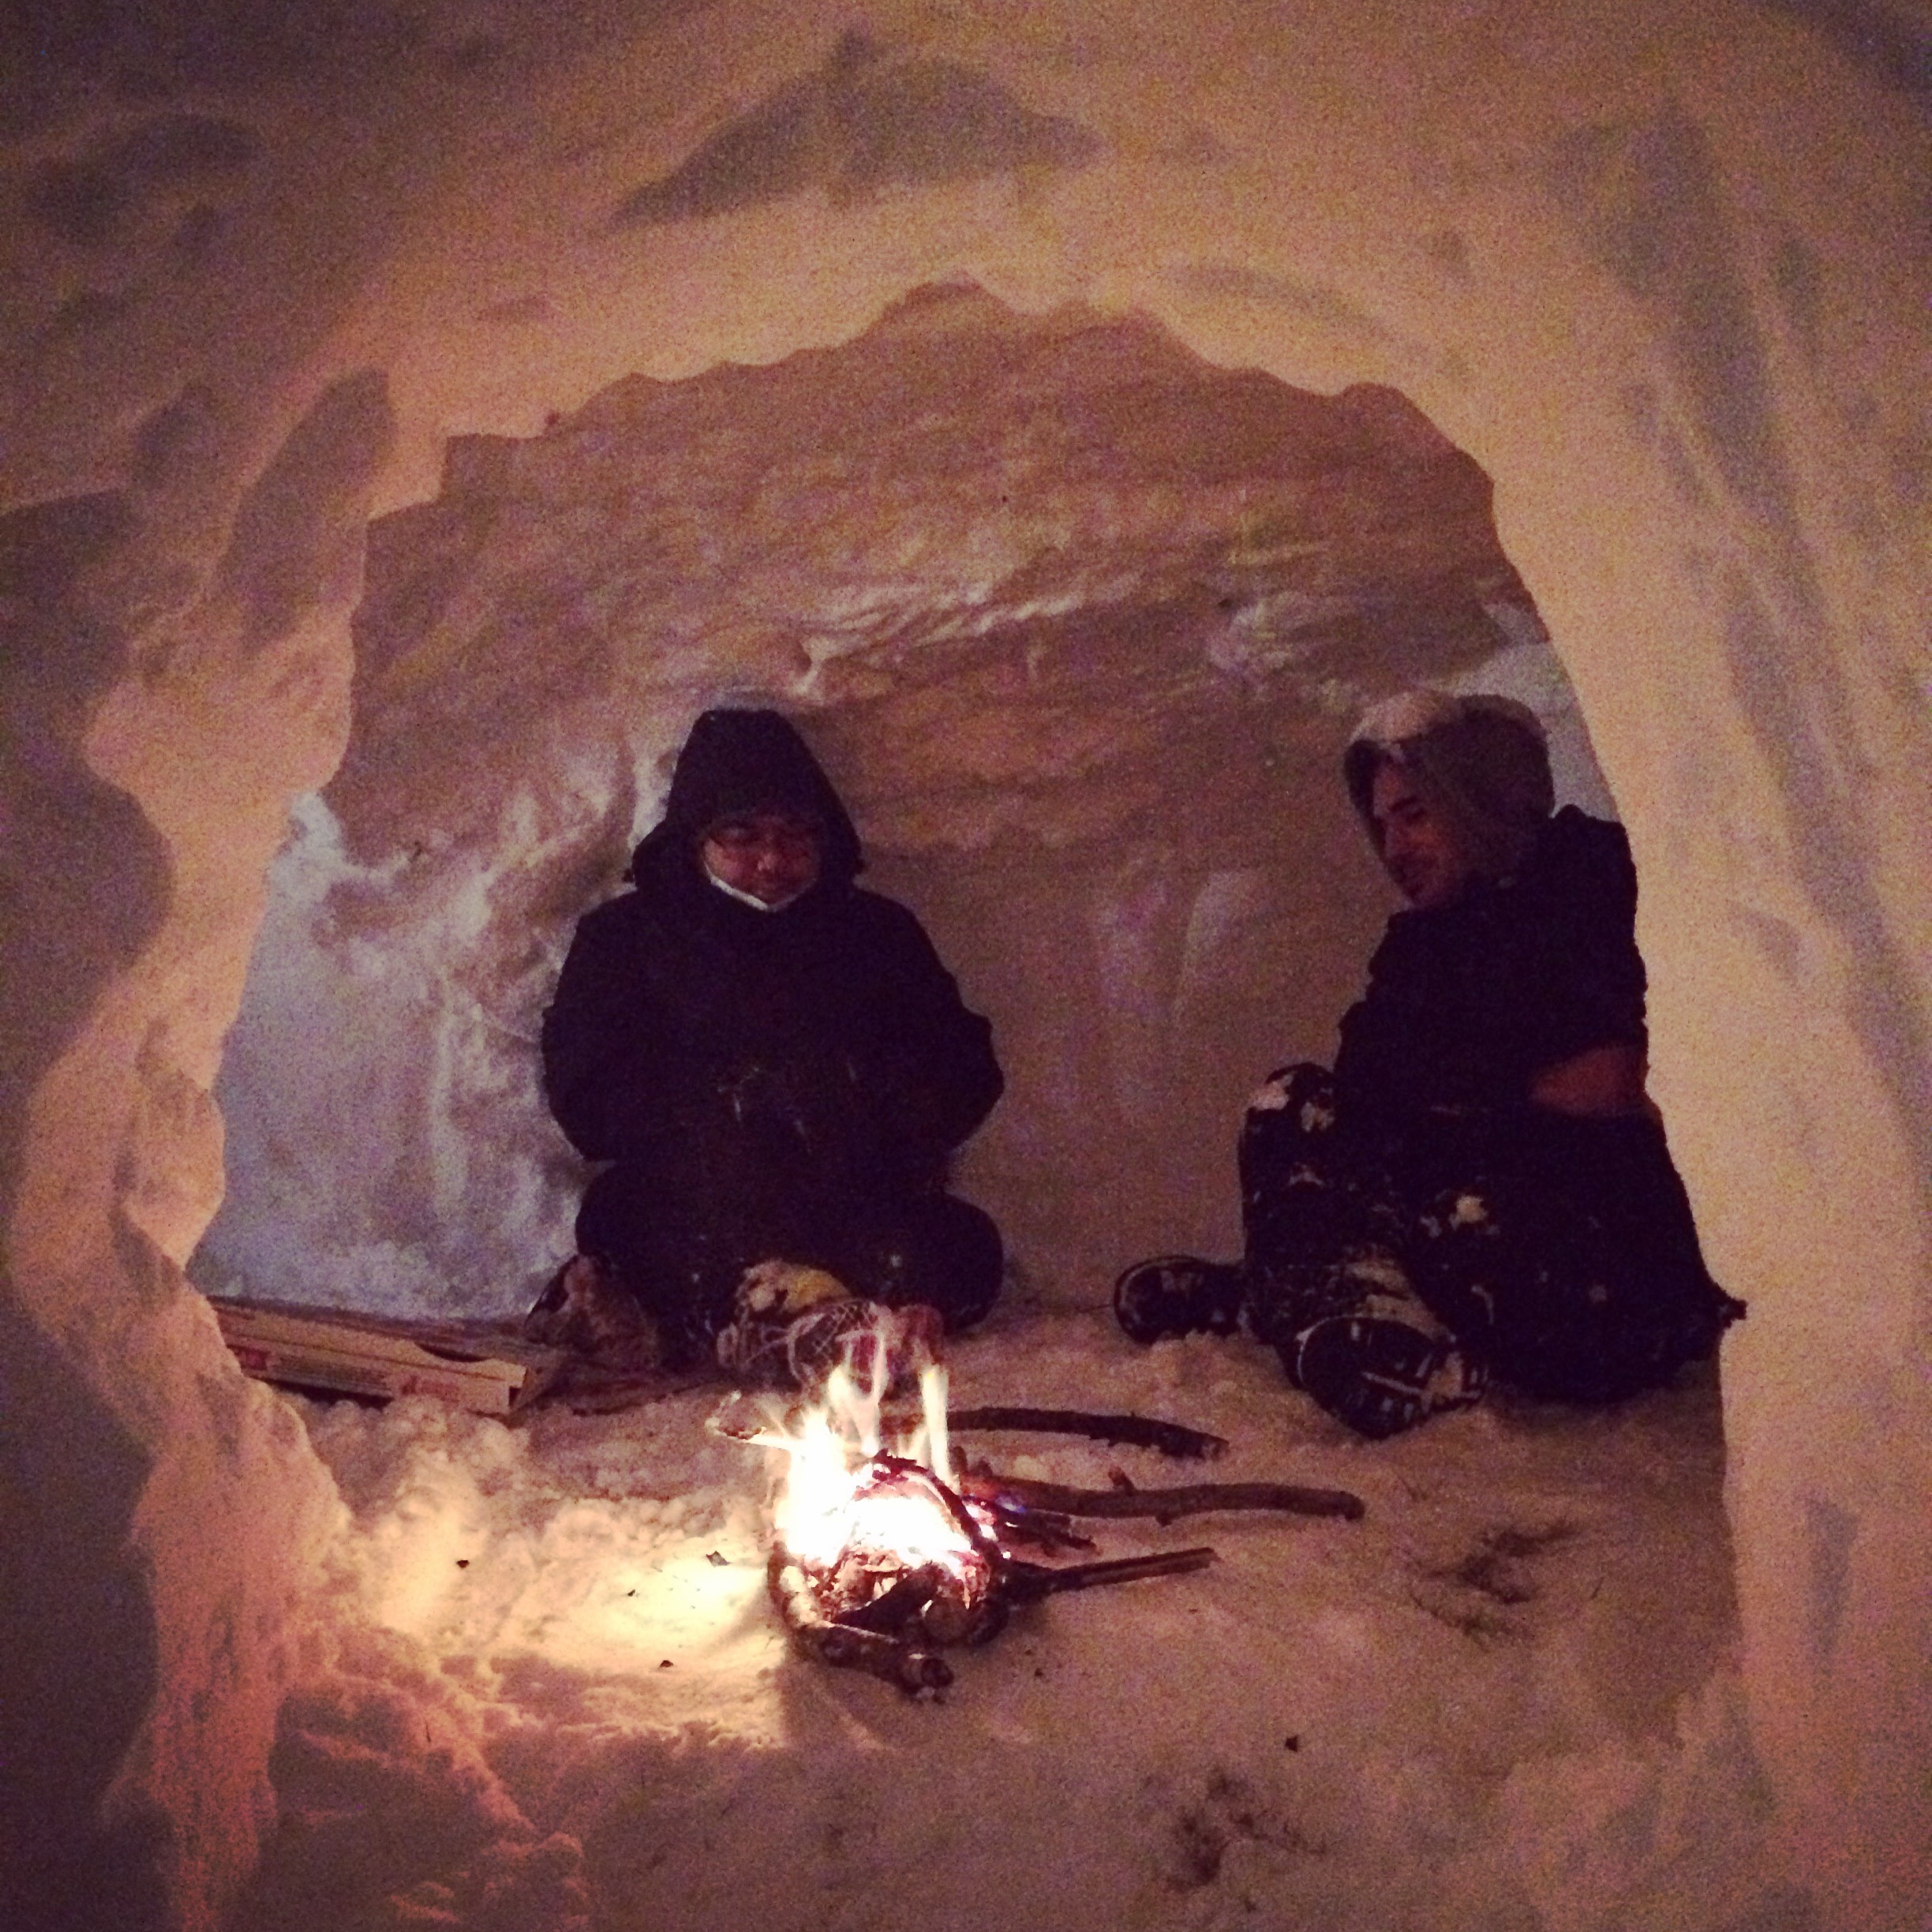 Jesse and my brother Jon, keeping warm inside of the igloo we built.